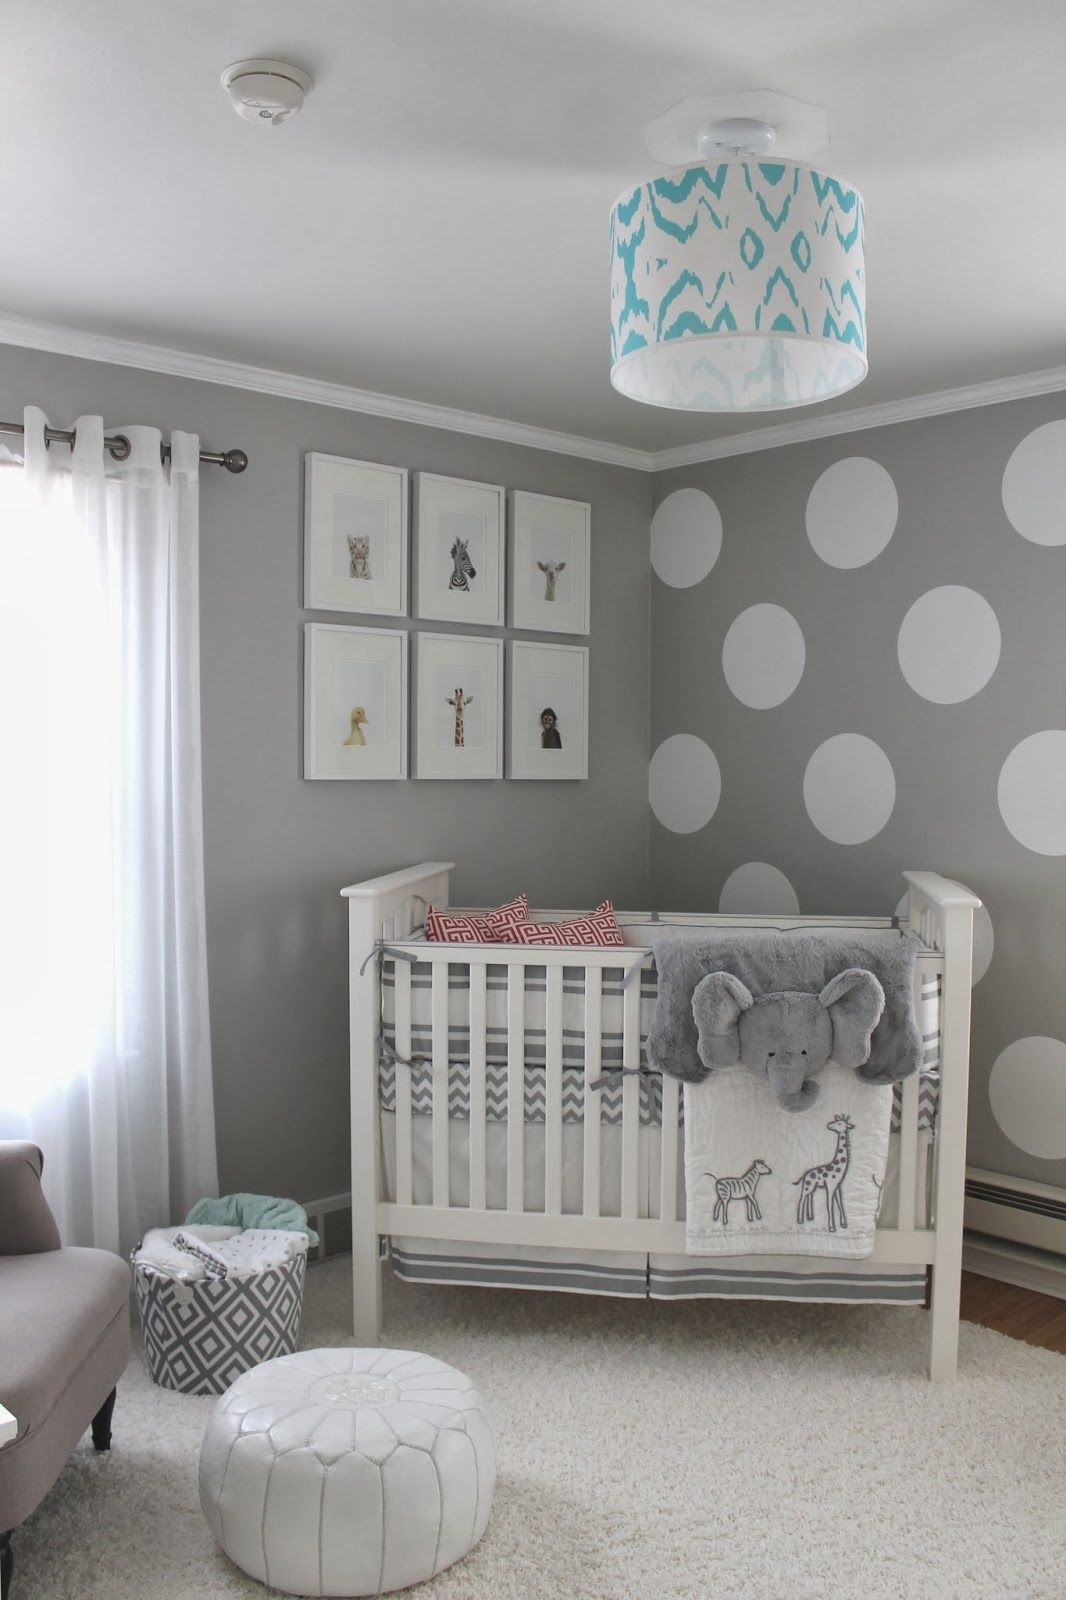 Gray baby room pictures photos and images for facebook for Decor chambre enfant